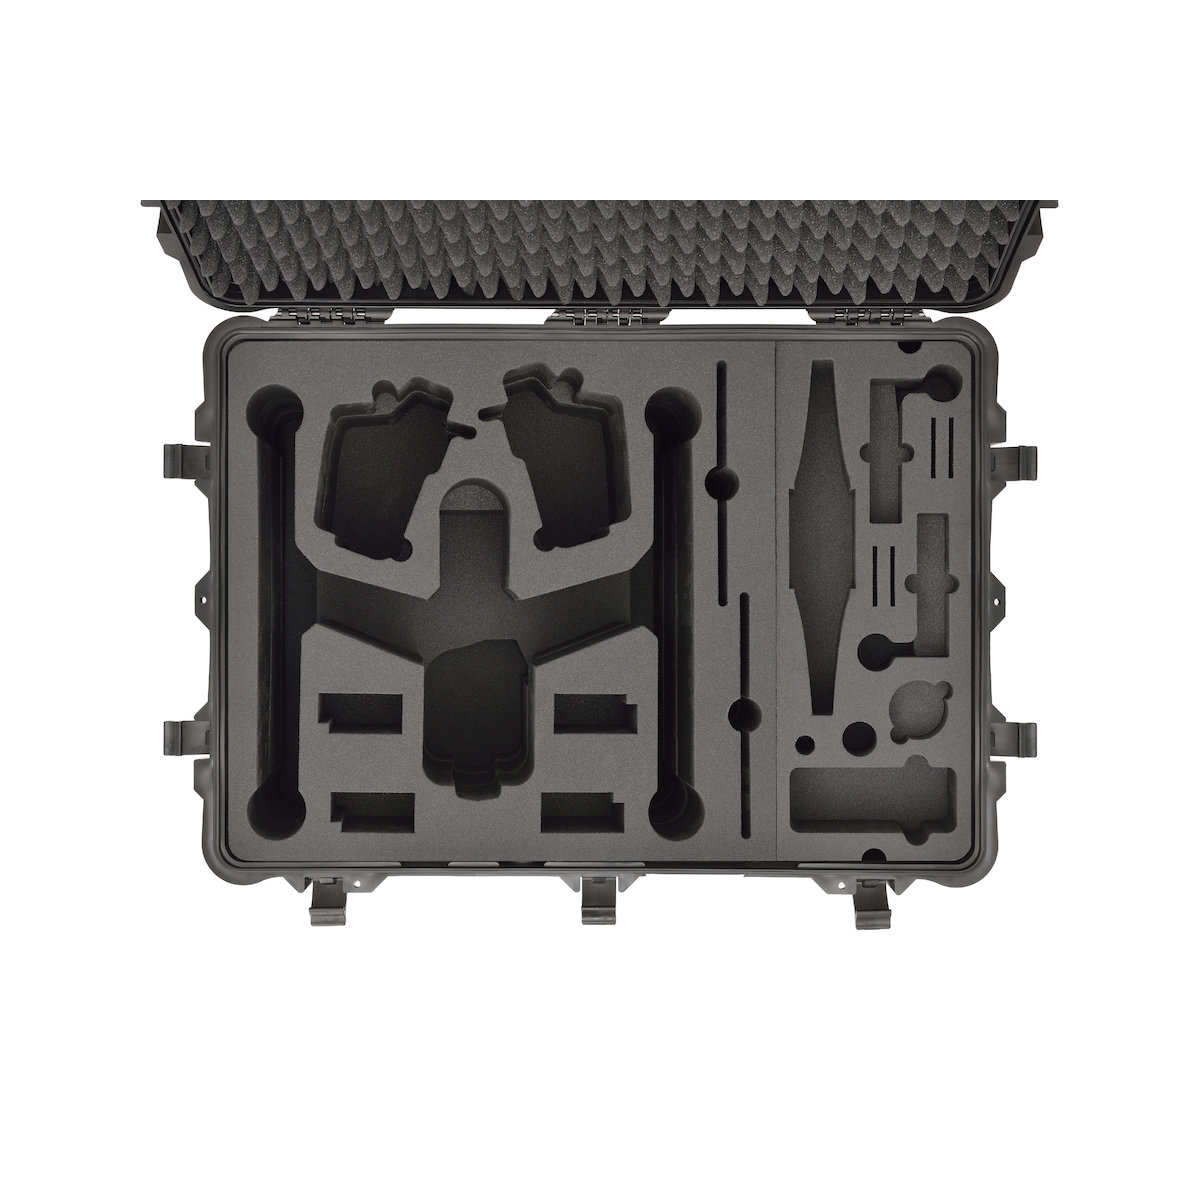 Drone Case HPRC2780W For DJI Inspire Pro Landing Mode Case